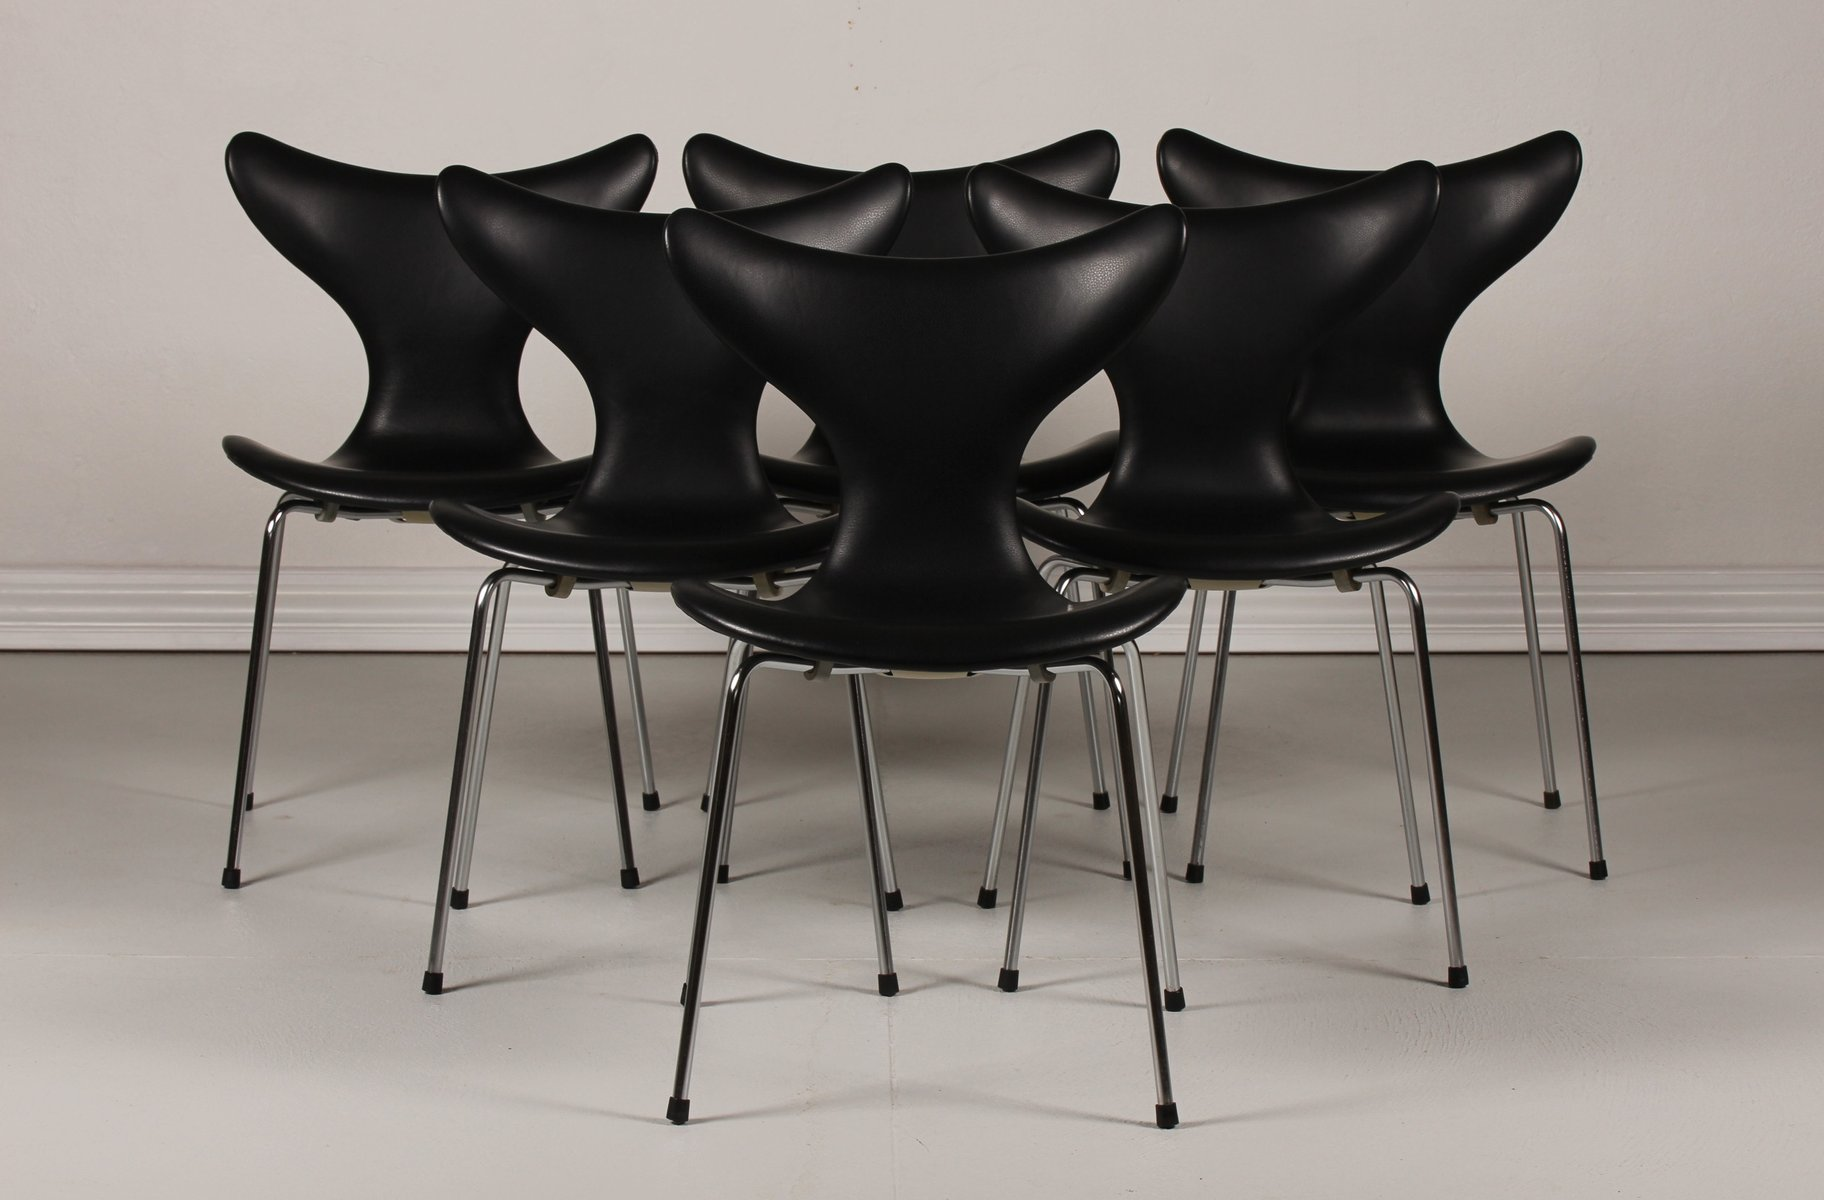 danish lily chairs 3108 by arne jacobsen for fritz hansen 1950s set of 6 for sale at pamono. Black Bedroom Furniture Sets. Home Design Ideas